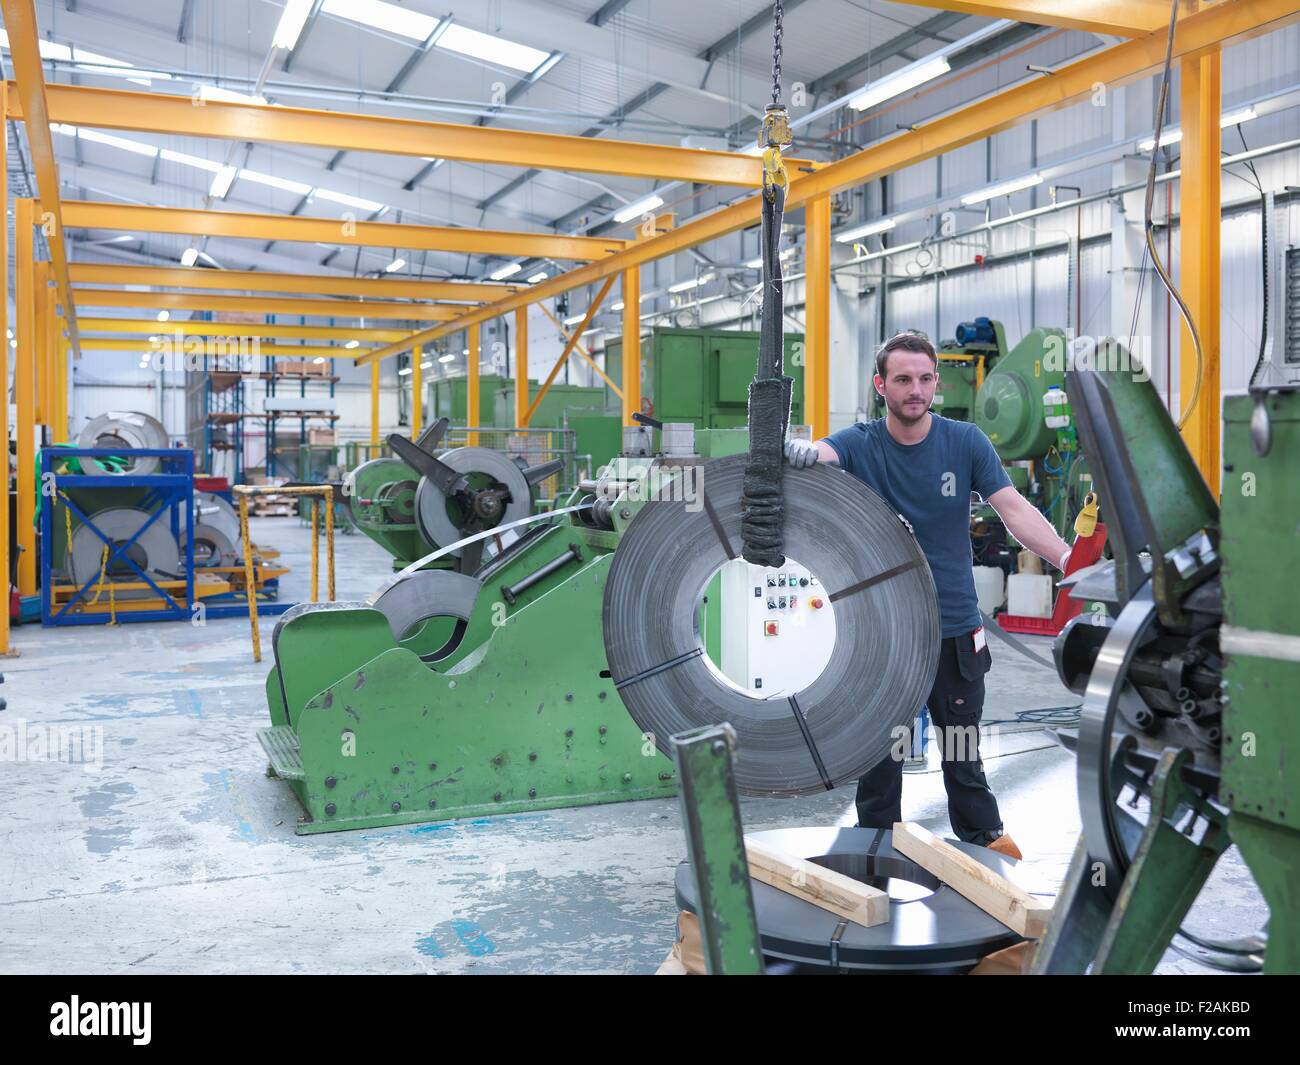 Worker loading rolls of metal into stamping machine in engineering factory - Stock Image